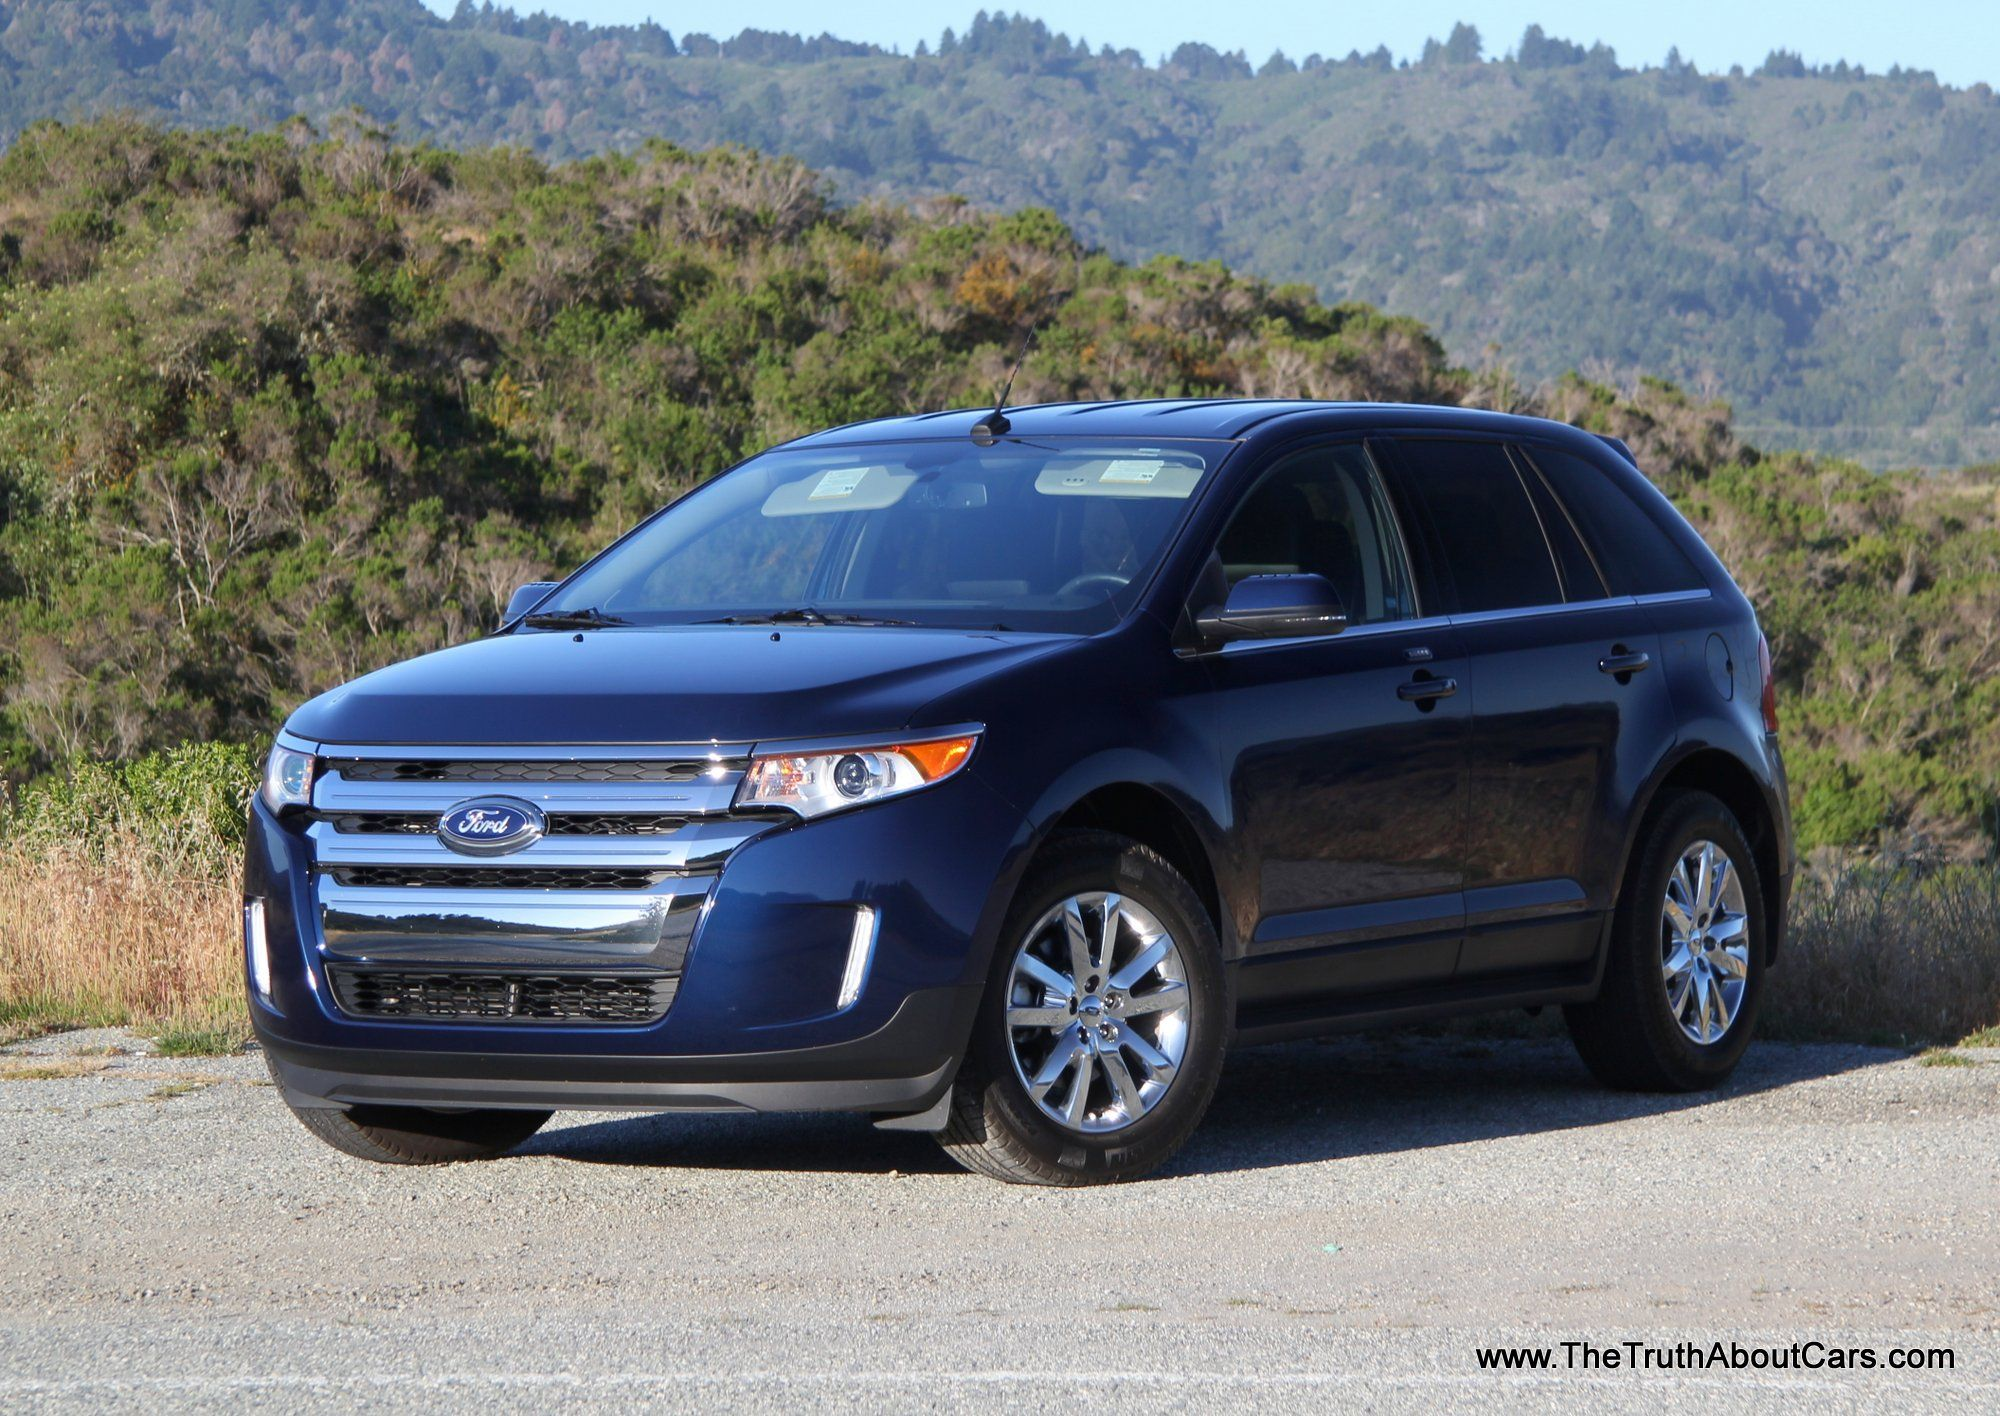 2014 Ford Edge In Dark Blue Love The Look Of This Car Very Smooth